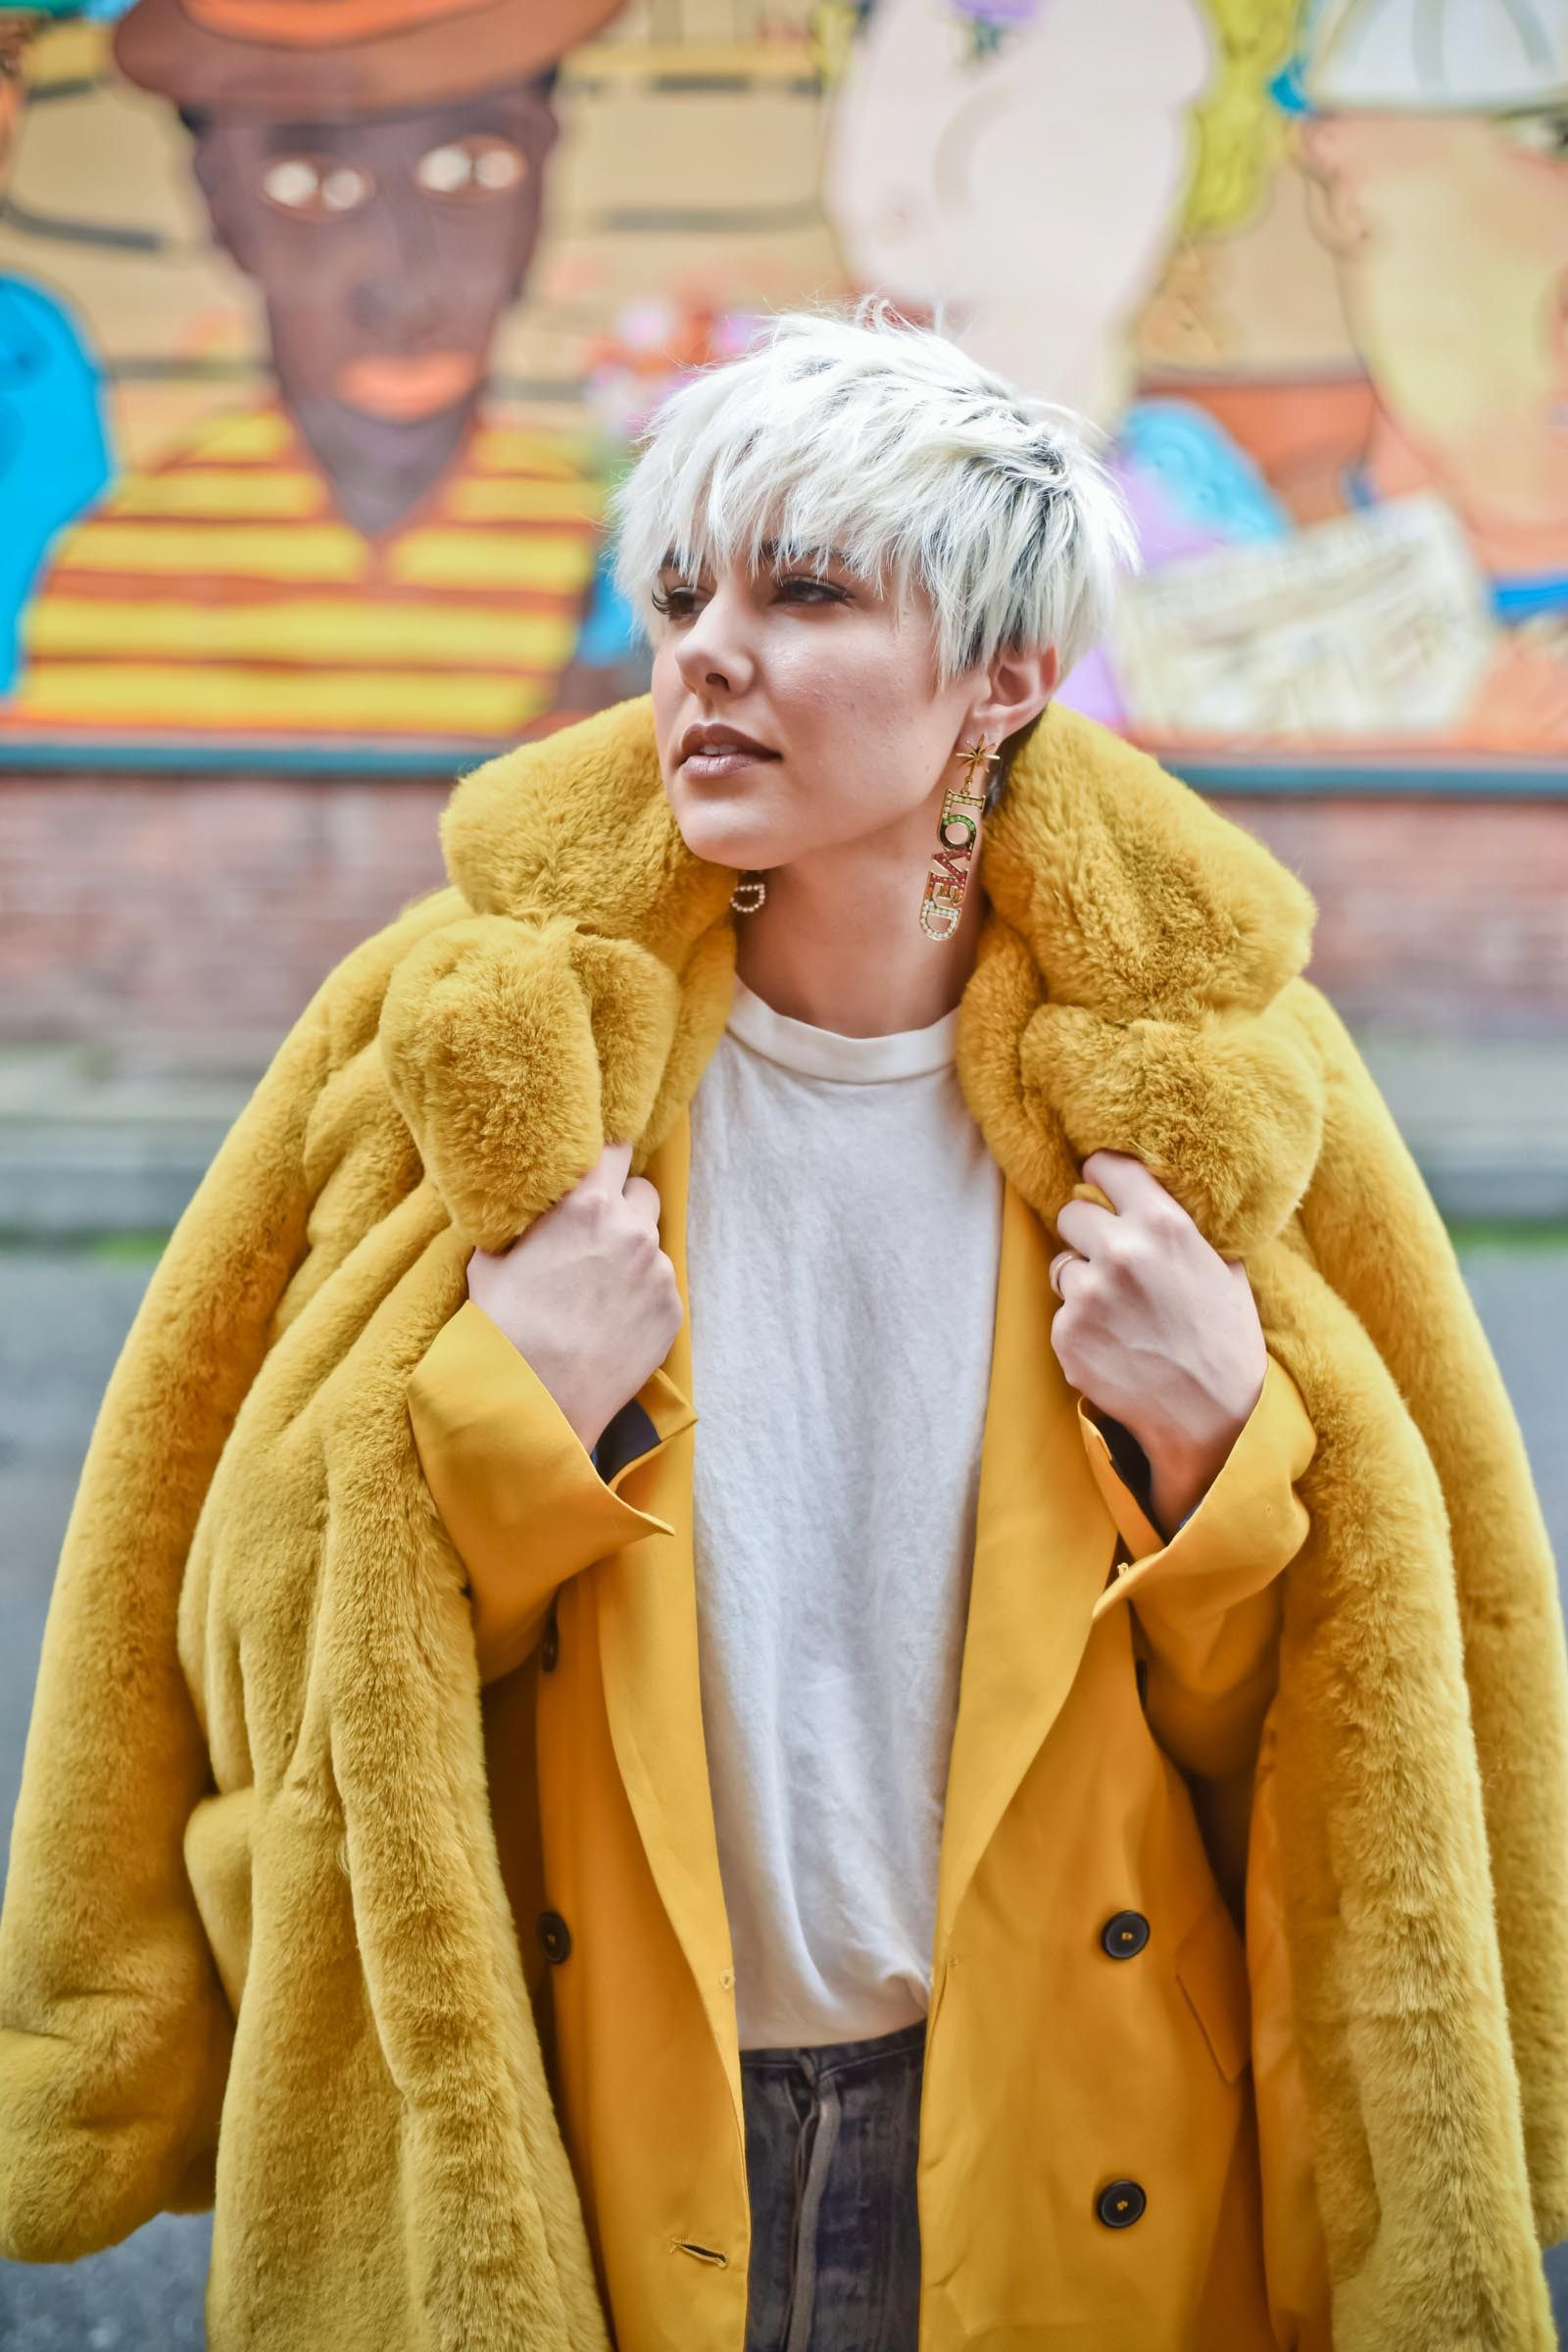 Yellow: The Color of Spring 2018- BloggerNotBillionaire